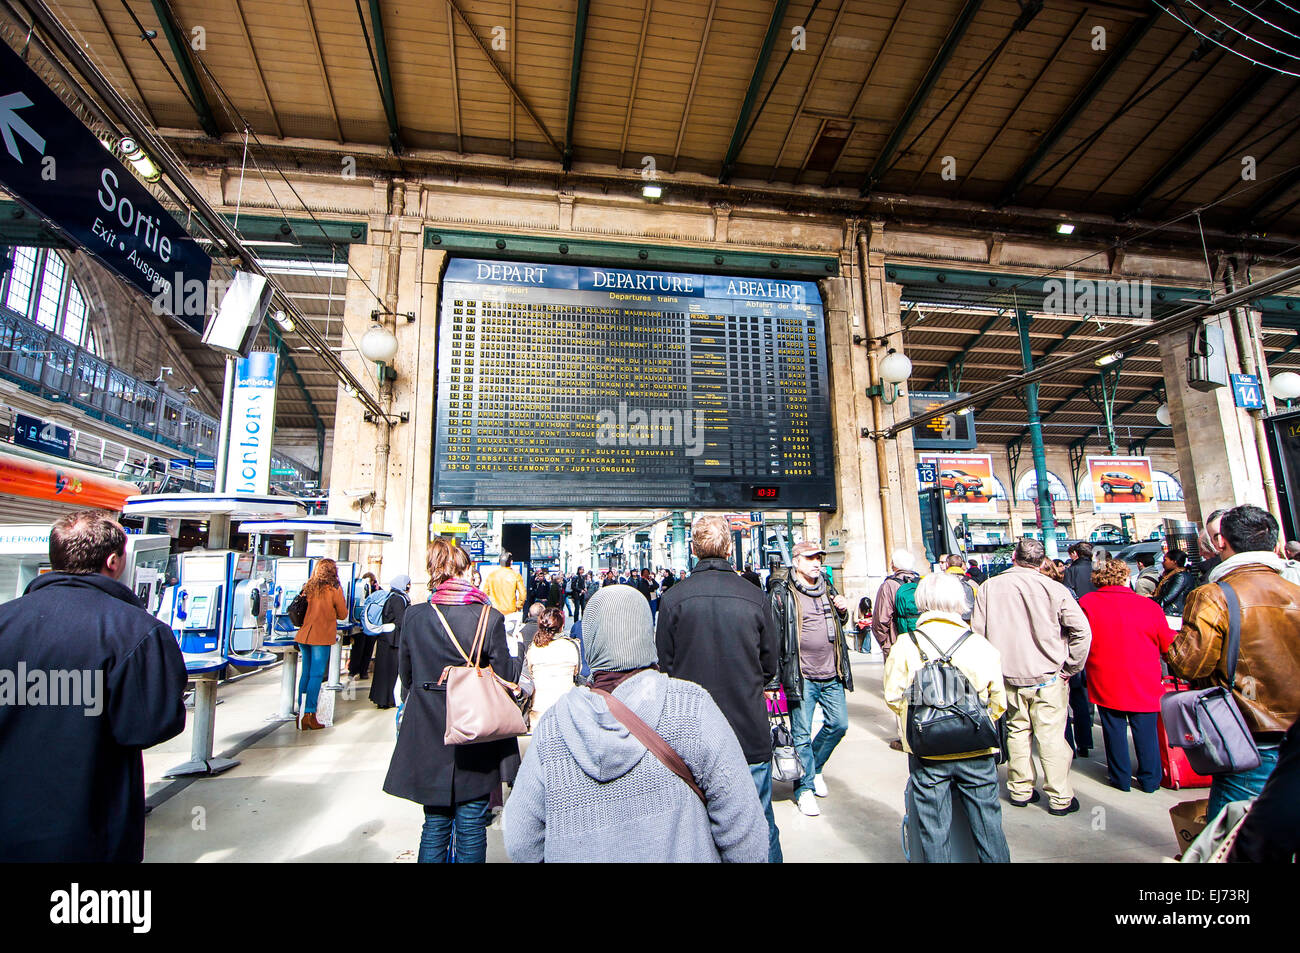 Travellers standing in front of the large departure times board at the Gare Du Nord train station in Paris, France. - Stock Image